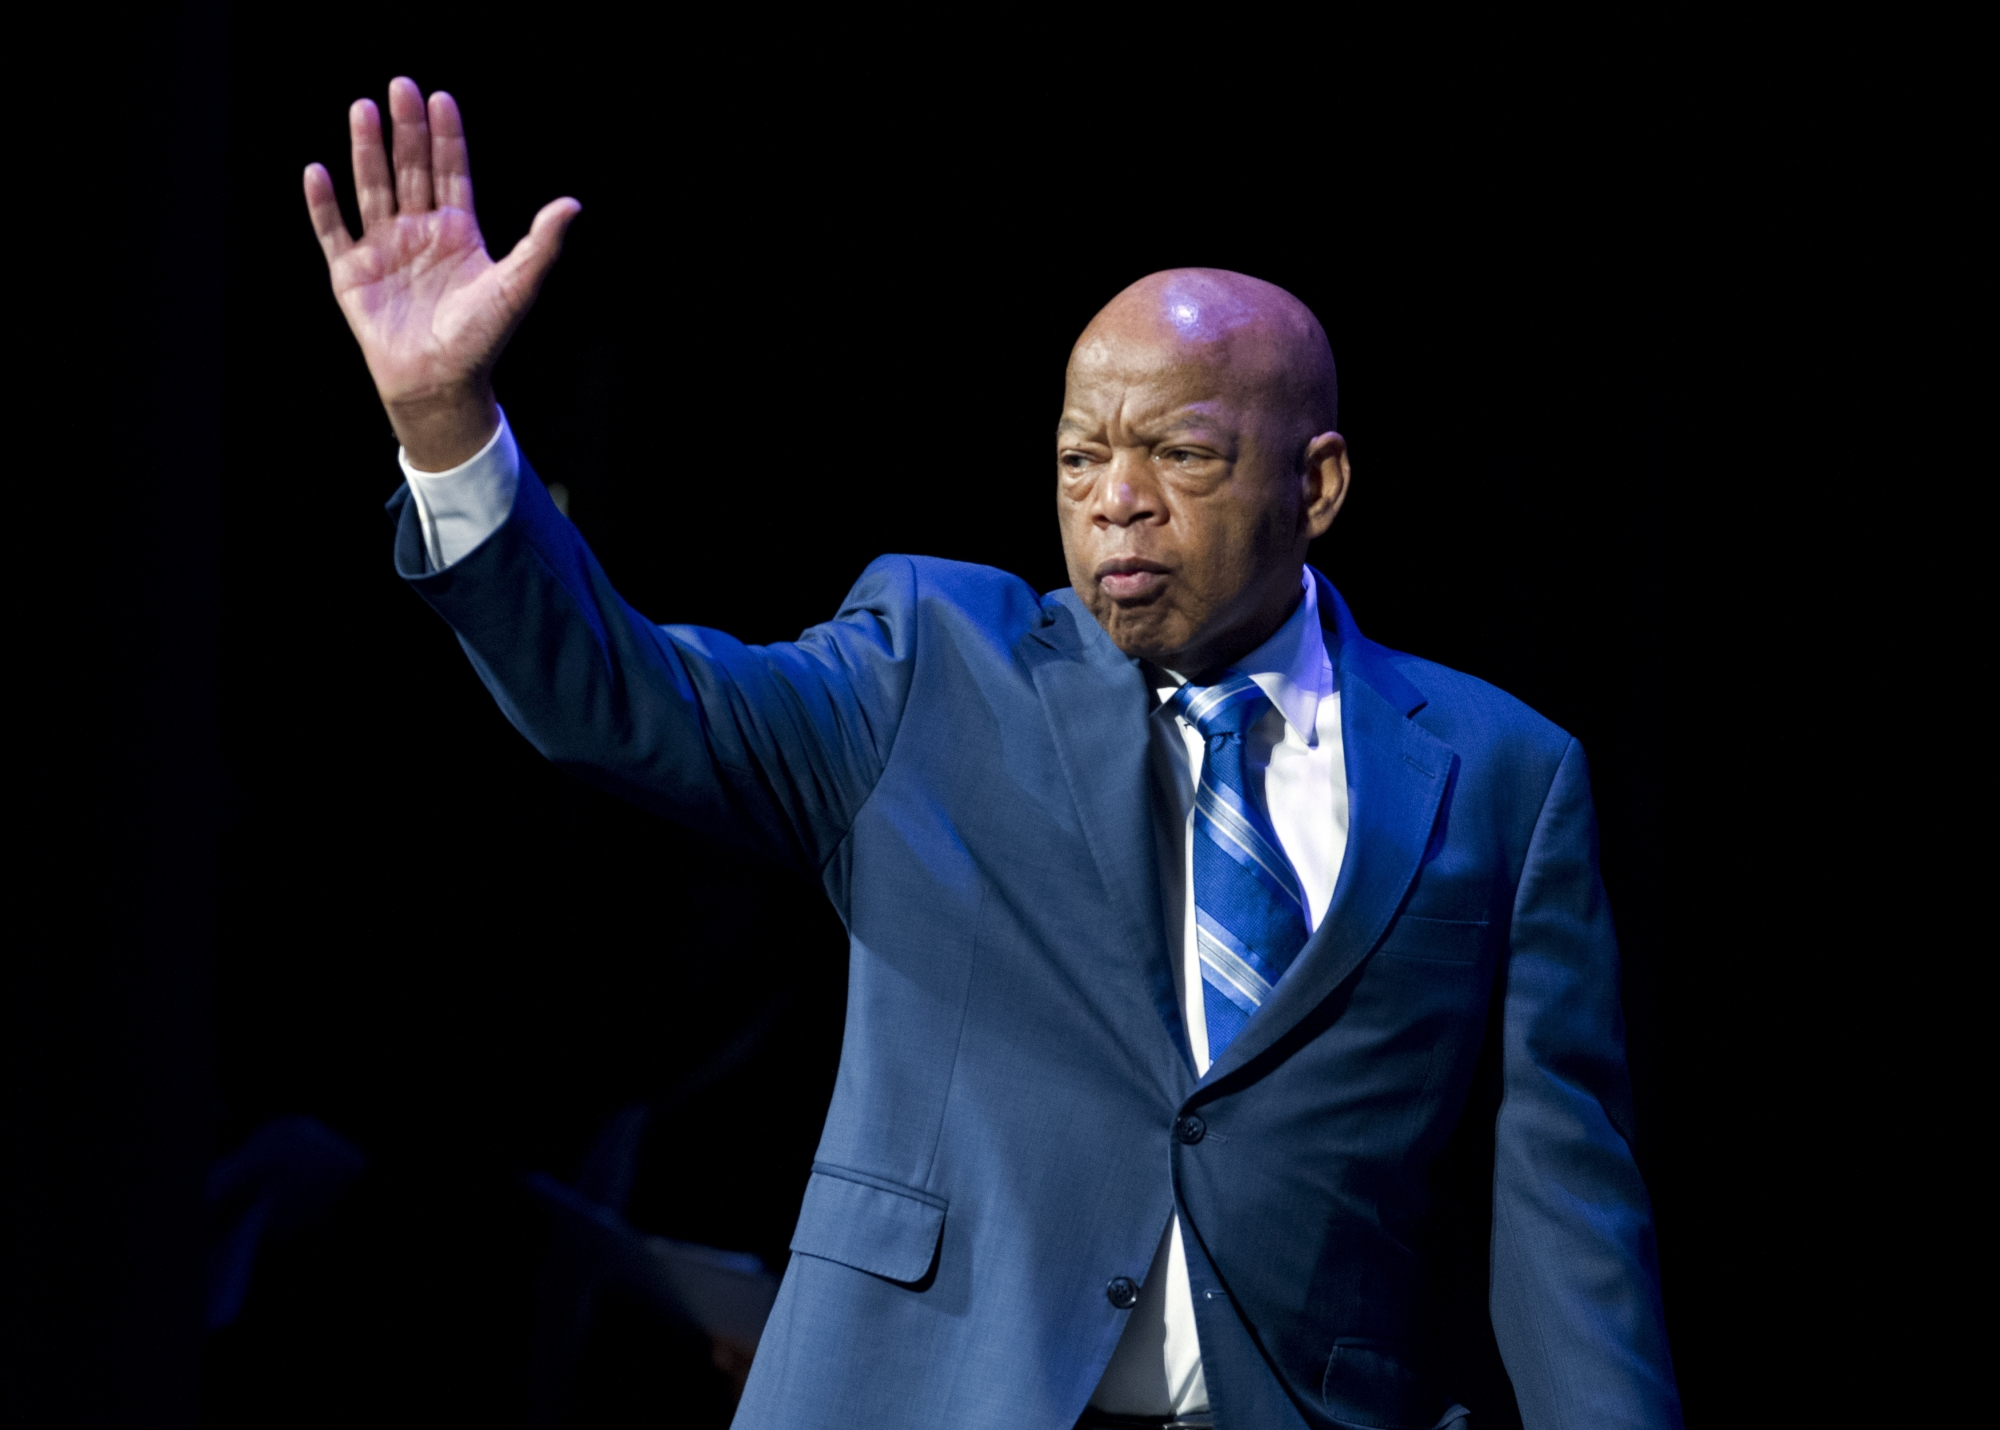 CNN To Make Documentary On Civil Rights Icon John Lewis